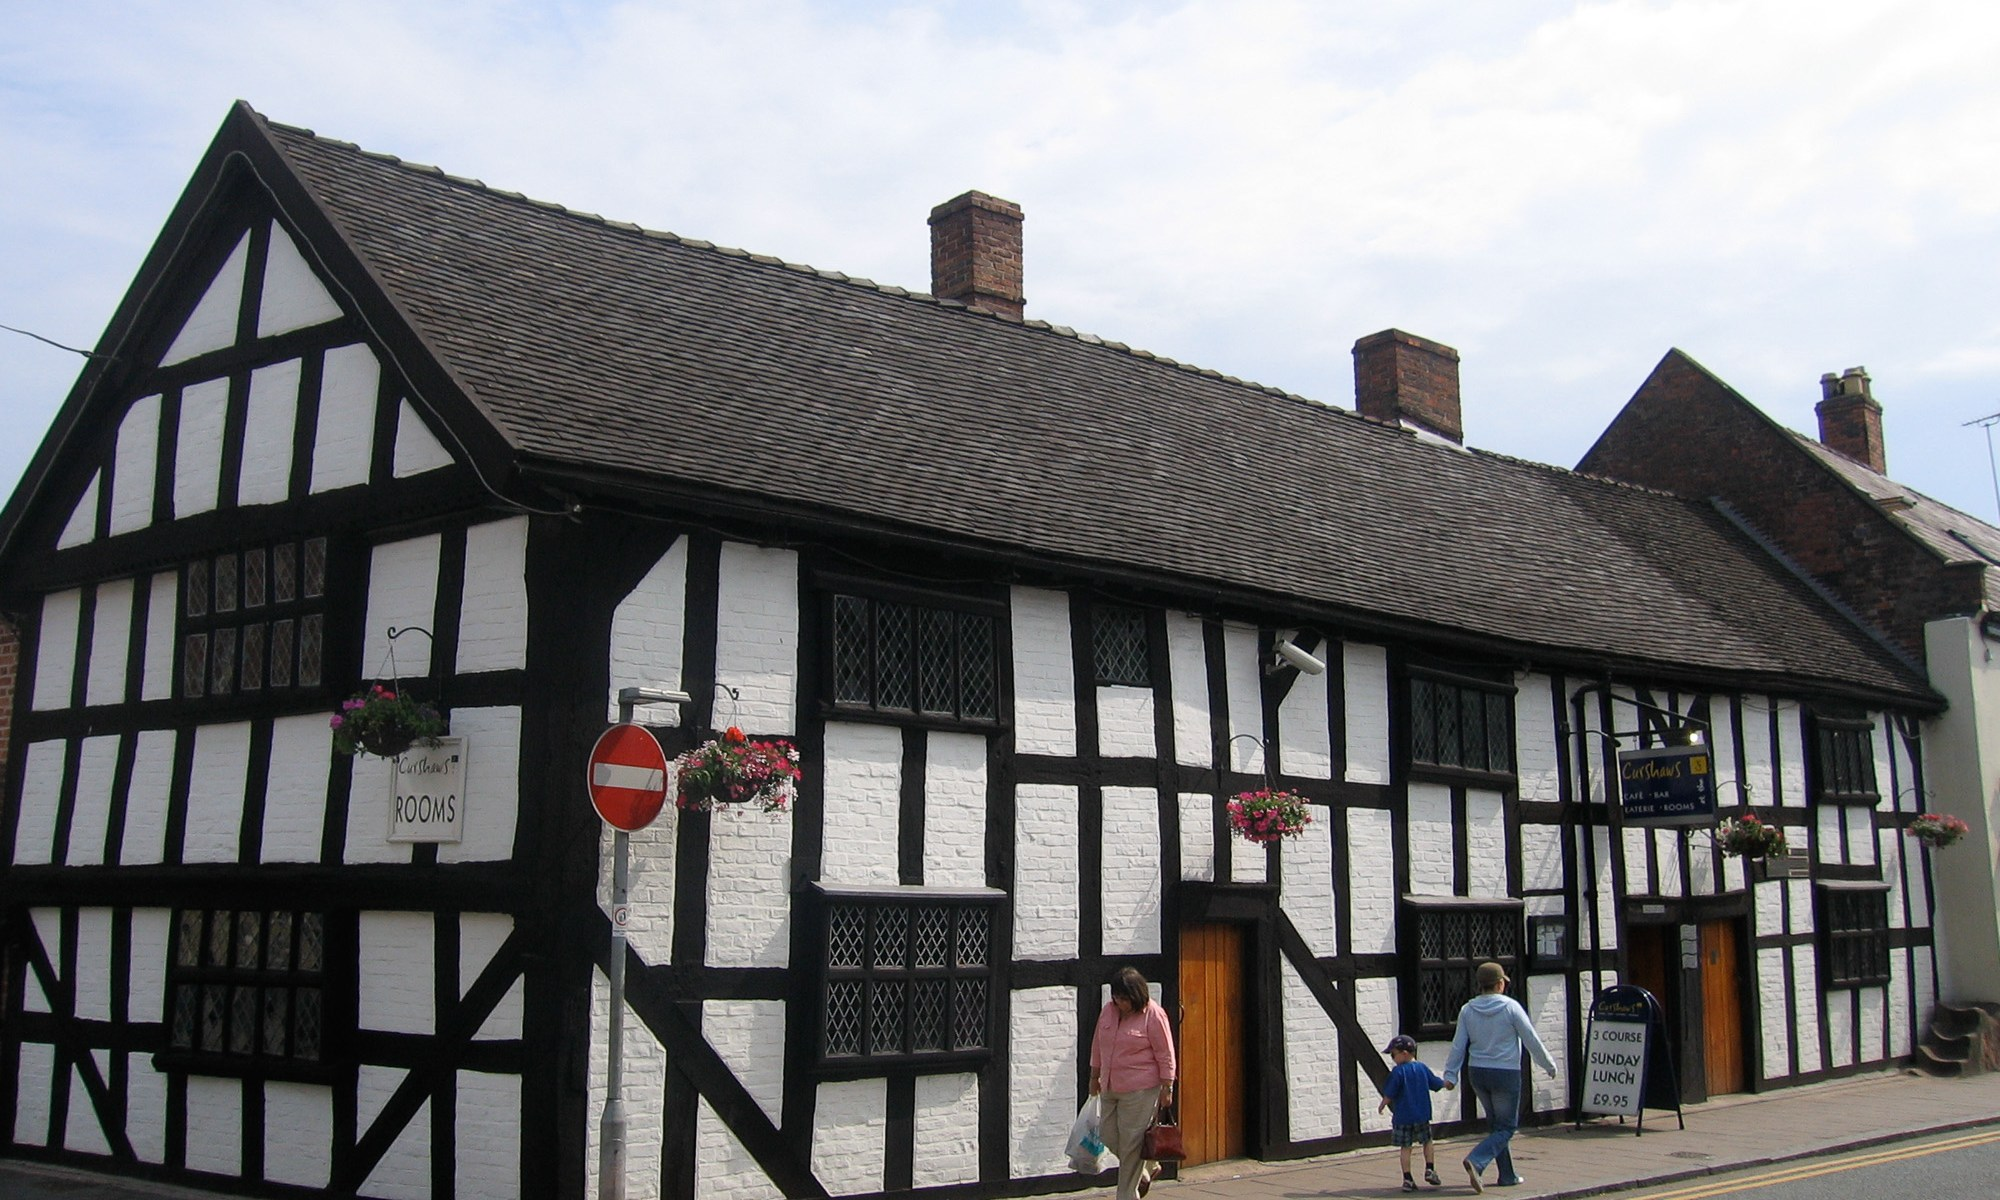 Cershaws Rooms Building, Nantwich